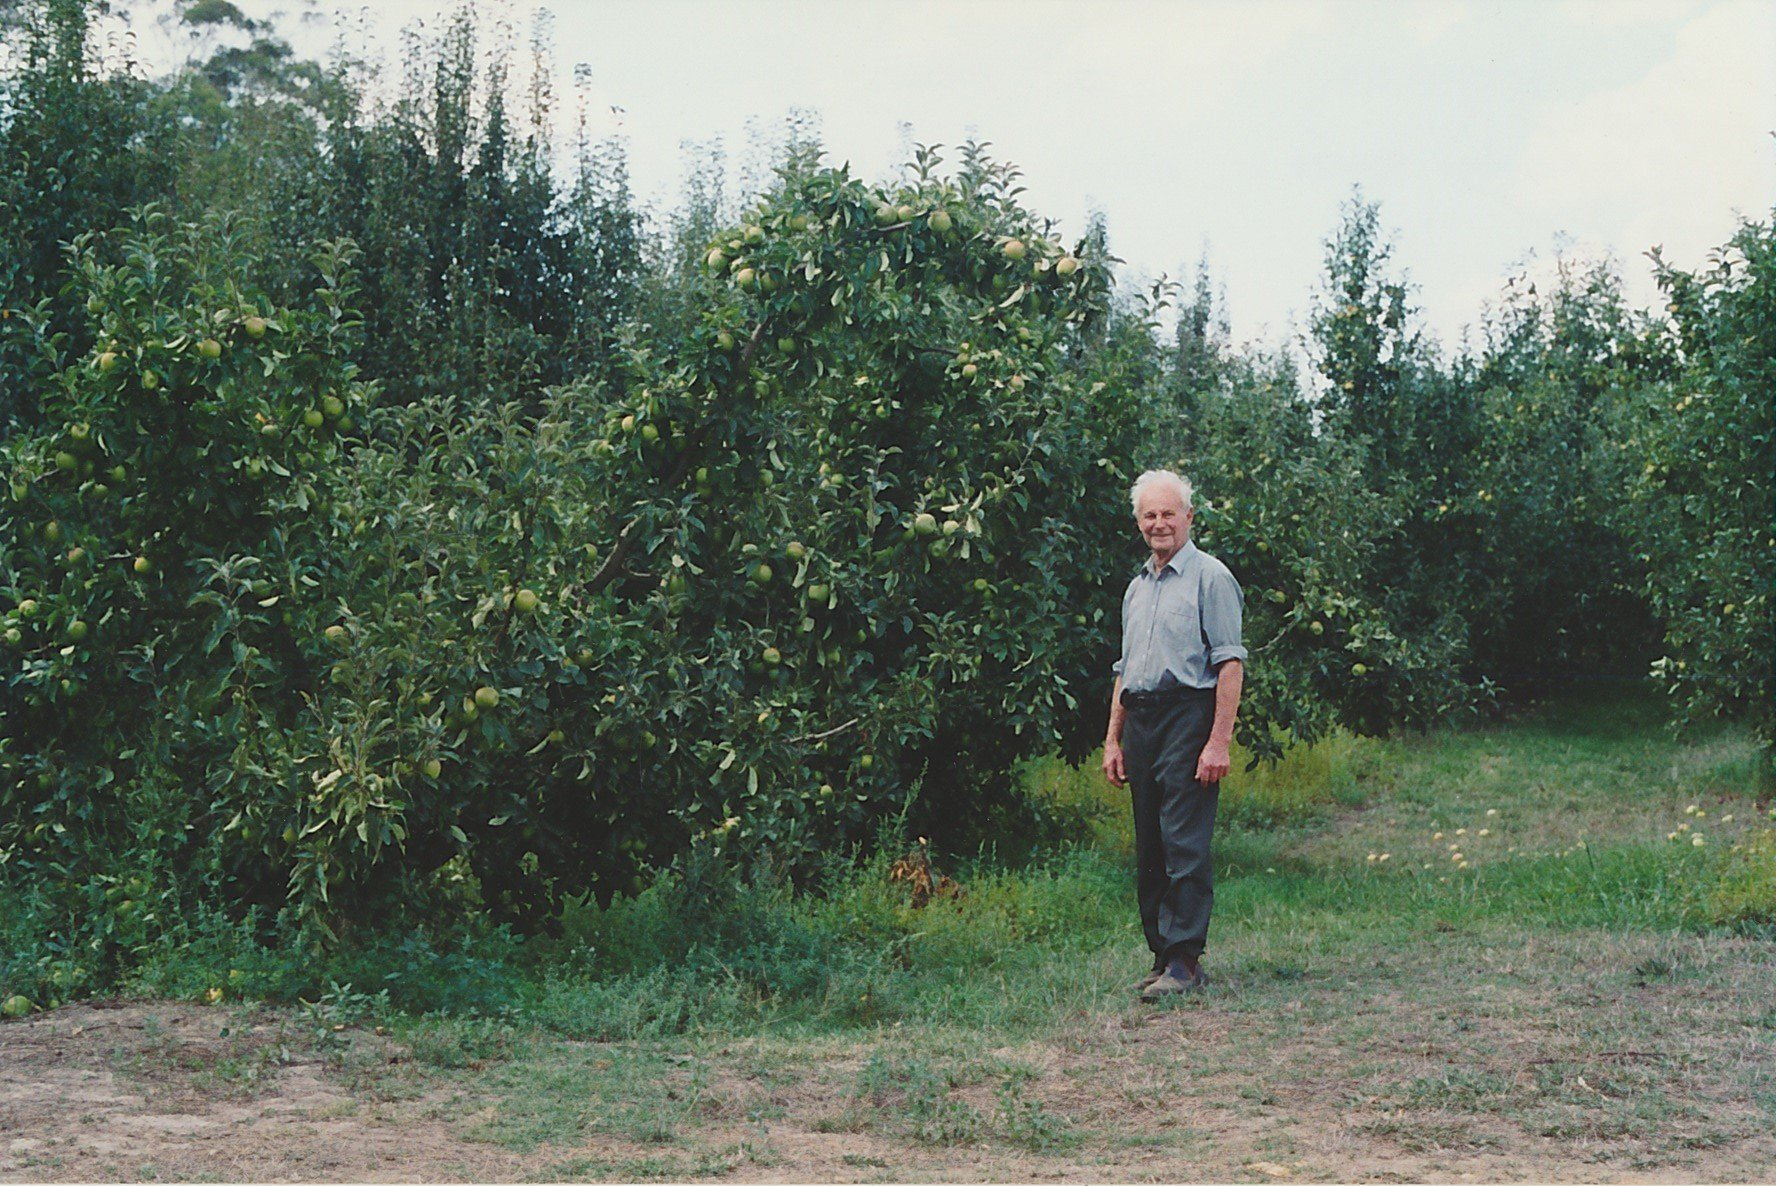 Lindsay Apted near the Granny Smith apple trees along the Arthurs Creek at 'Glen Ard'.  Bruce G. Draper, November 2003